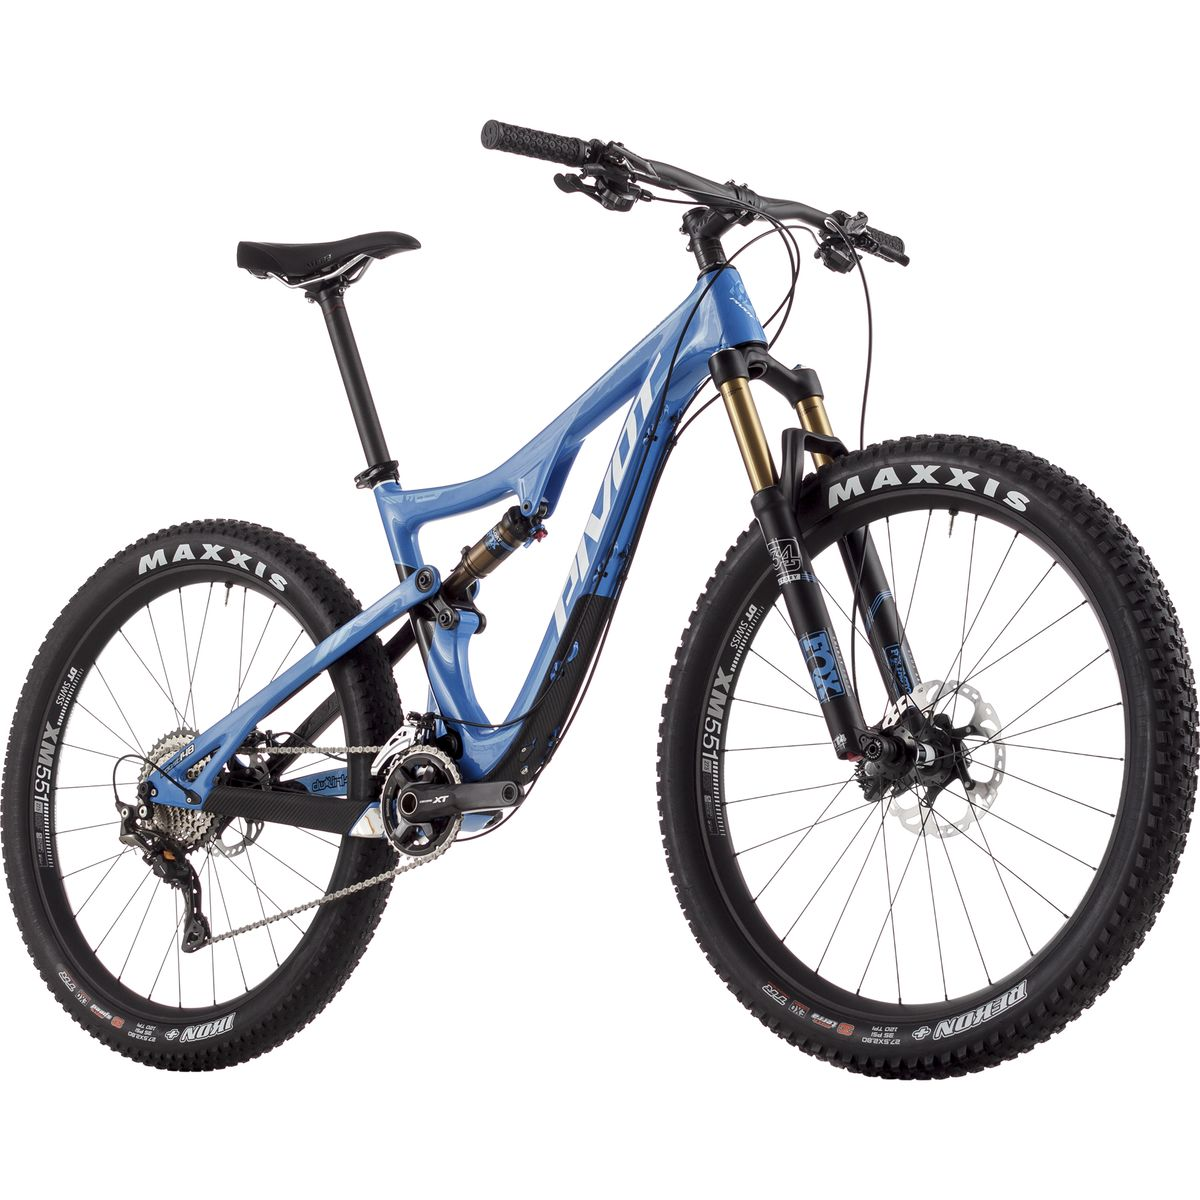 mountain bikes Choose the best mountain bikes for sale from under $200 to under $3000 advice on budget, brand, suspension, wheel size, frame material and riding style.